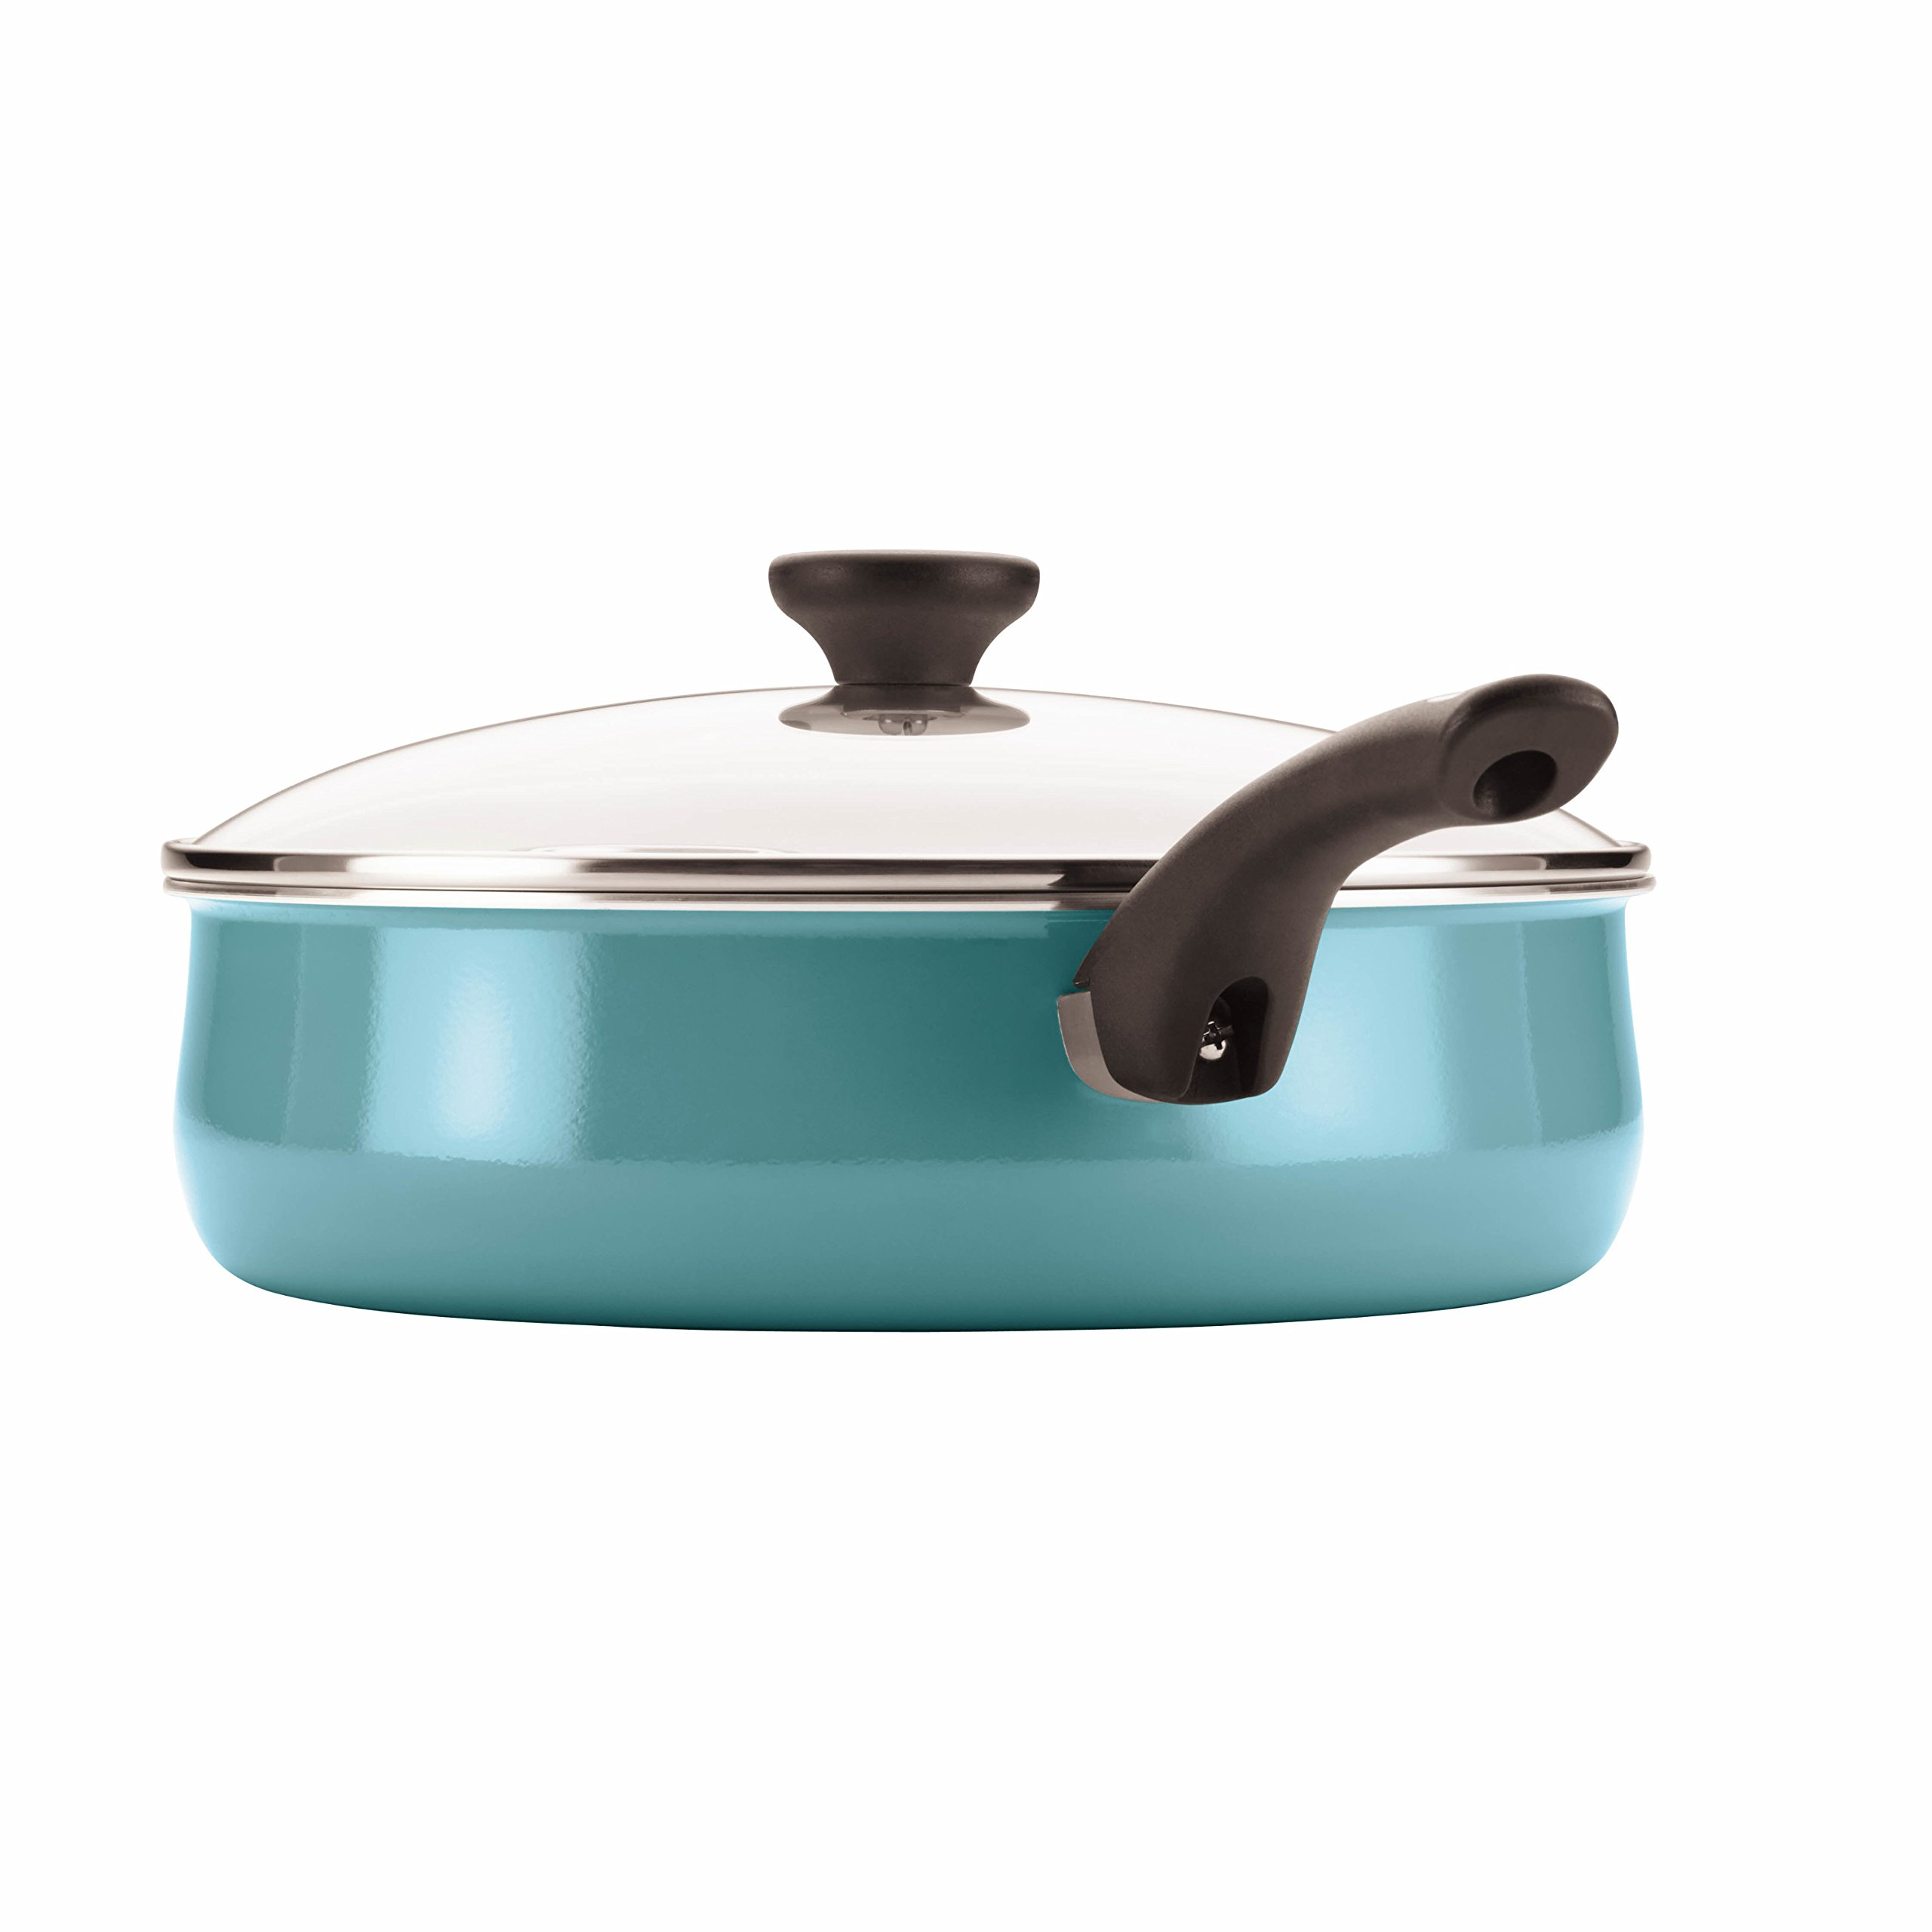 Farberware PURECOOK Ceramic Nonstick Cookware 5-Quart Covered Jumbo Cooker with Helper Handle, Aqua by Farberware (Image #2)